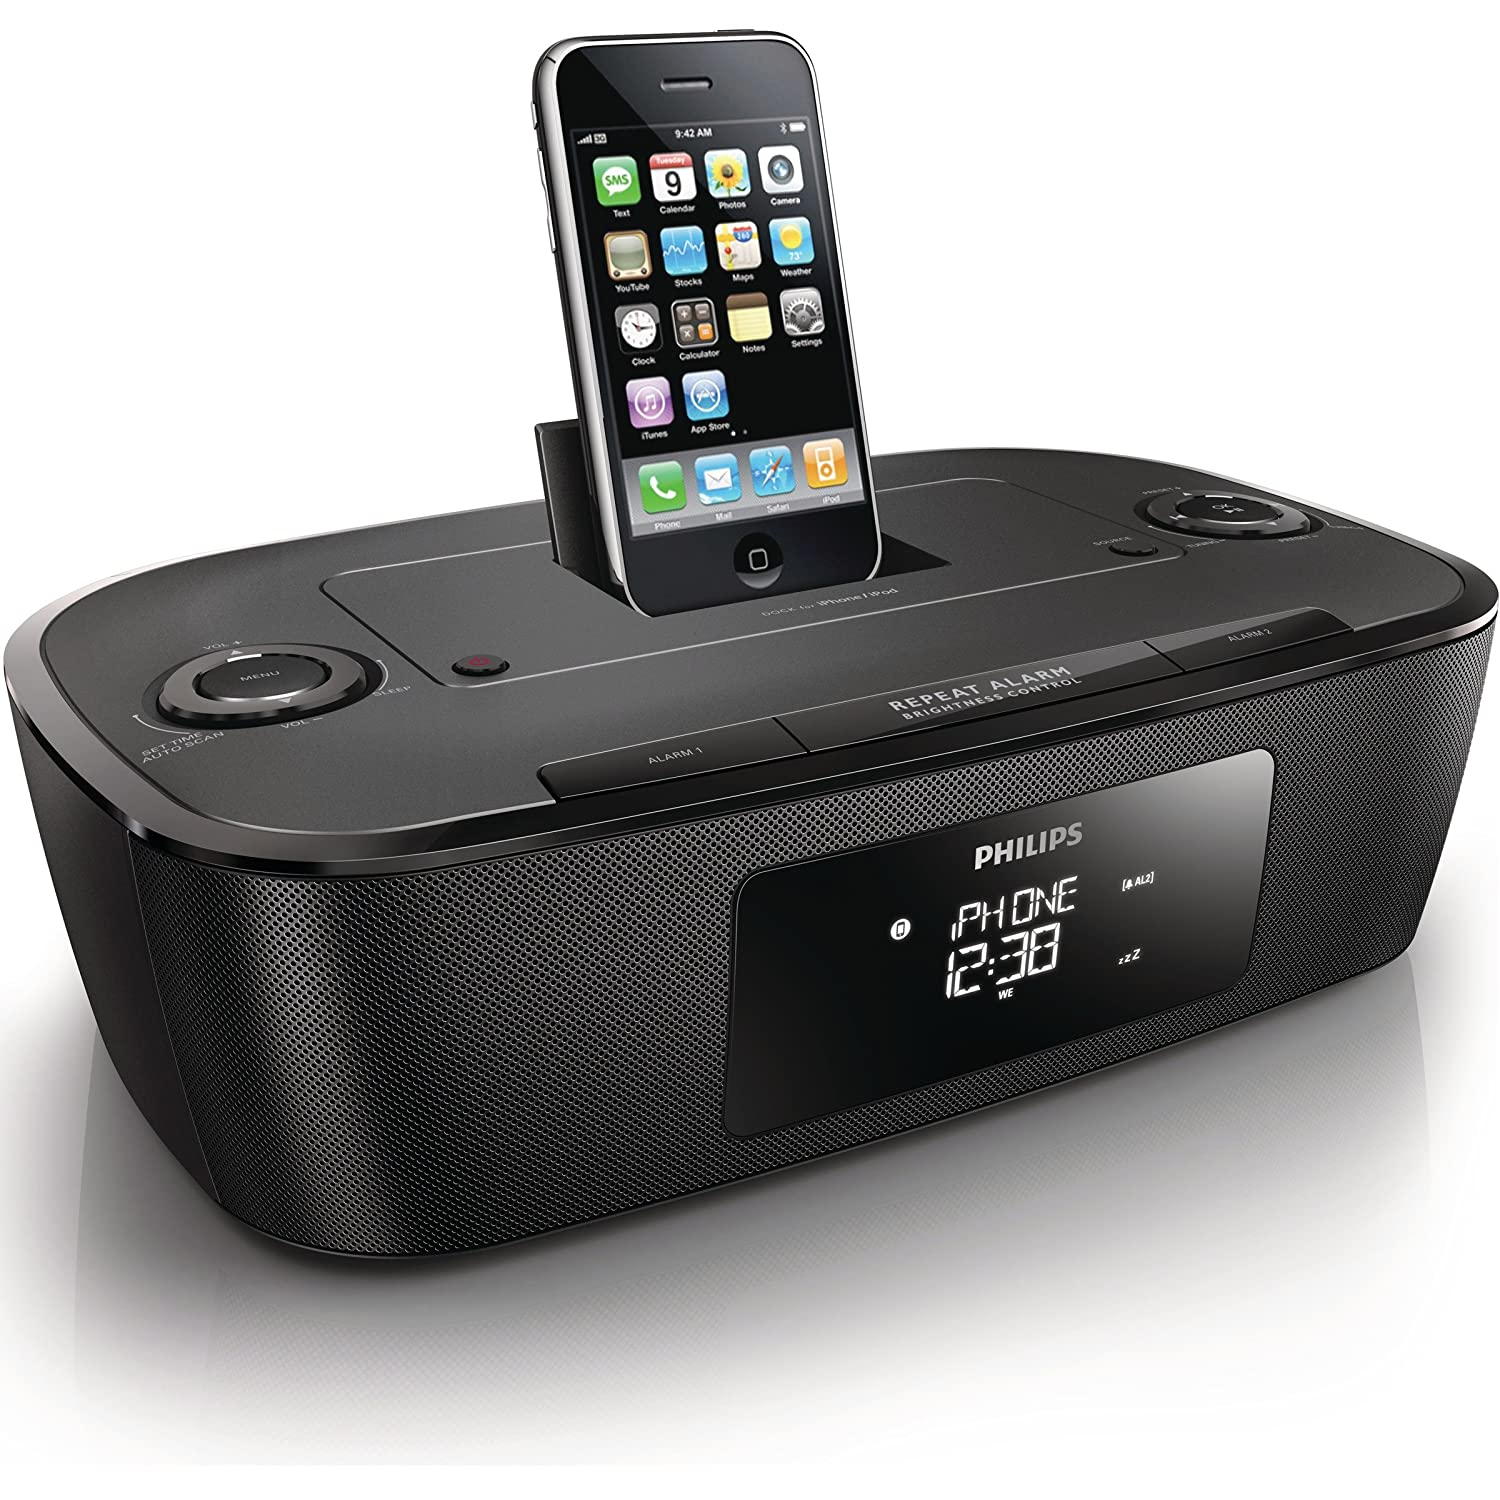 philips dab clock radio for ipod touch iphone 3gs 4 4s docking station speakers ebay. Black Bedroom Furniture Sets. Home Design Ideas